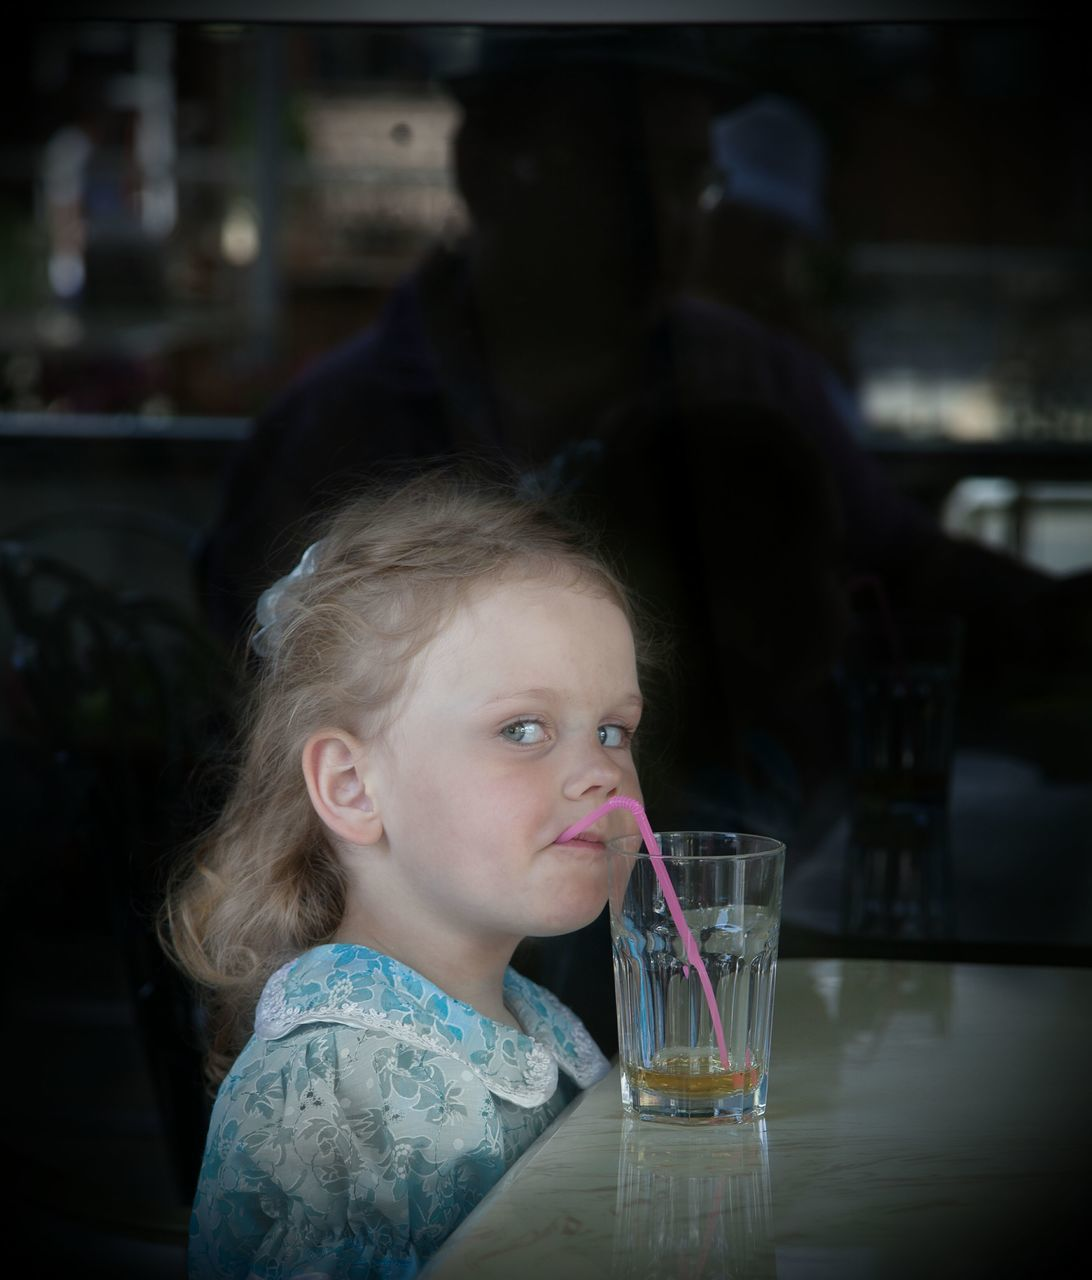 drinking glass, drink, childhood, food and drink, water, drinking water, drinking, girls, refreshment, real people, one person, cute, freshness, indoors, healthy eating, close-up, day, people